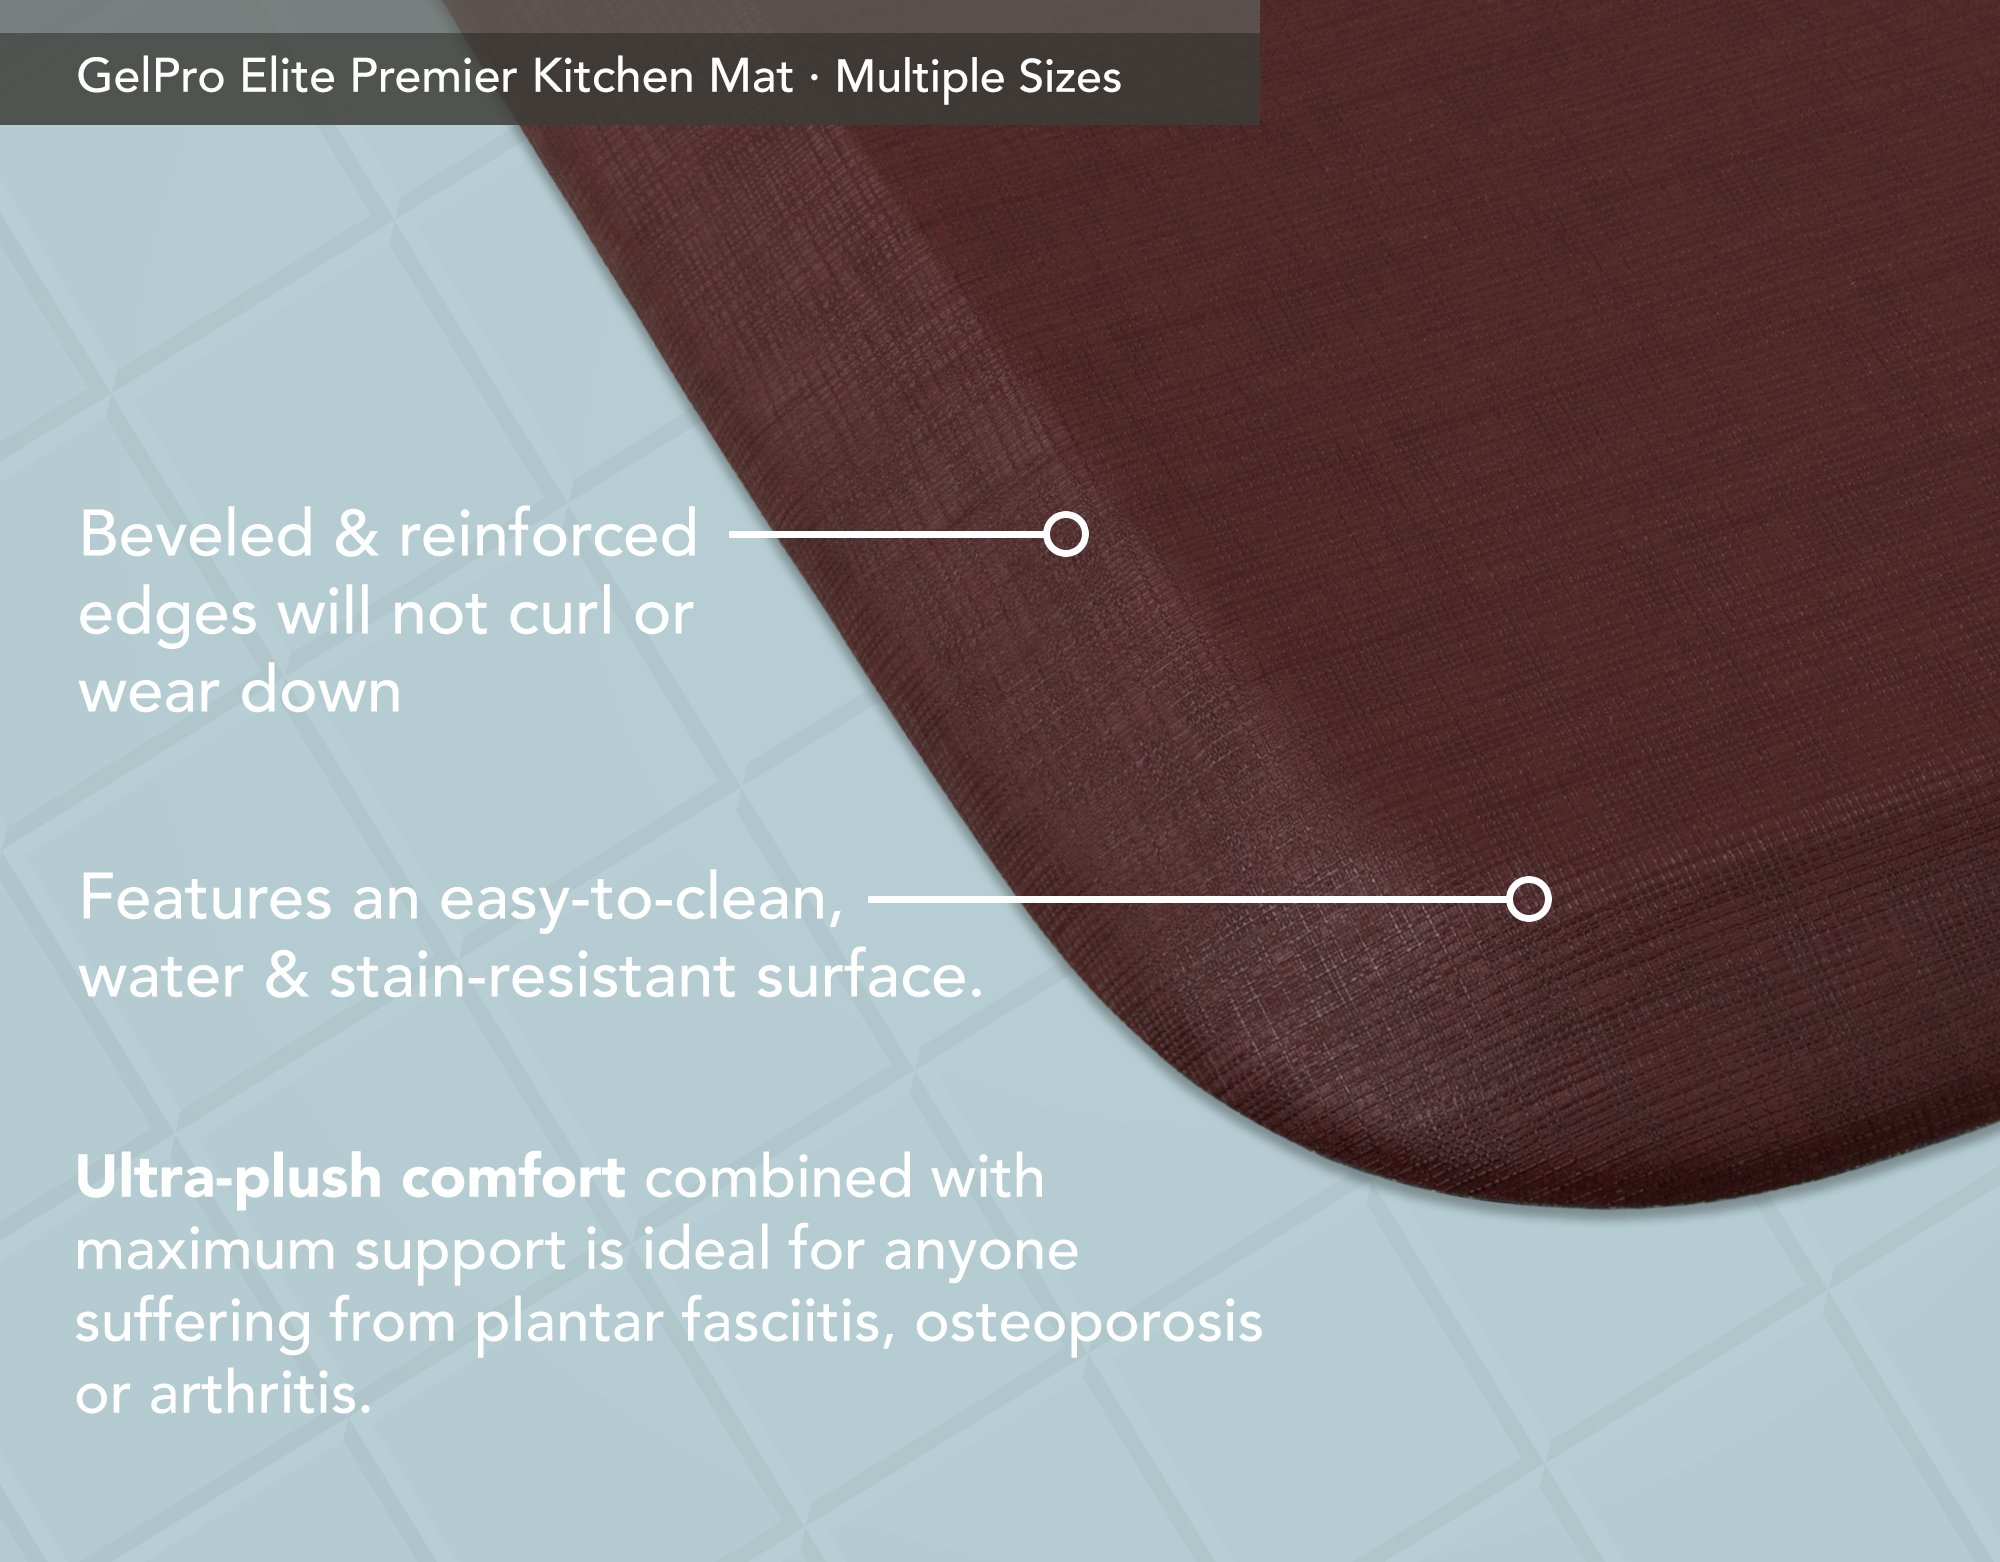 """GelPro Elite Premier Anti-Fatigue Kitchen Comfort Floor Mat, 20x36"""", Linen Cardinal Stain Resistant Surface with therapeutic gel and energy-return foam for health & wellness by GelPro (Image #4)"""